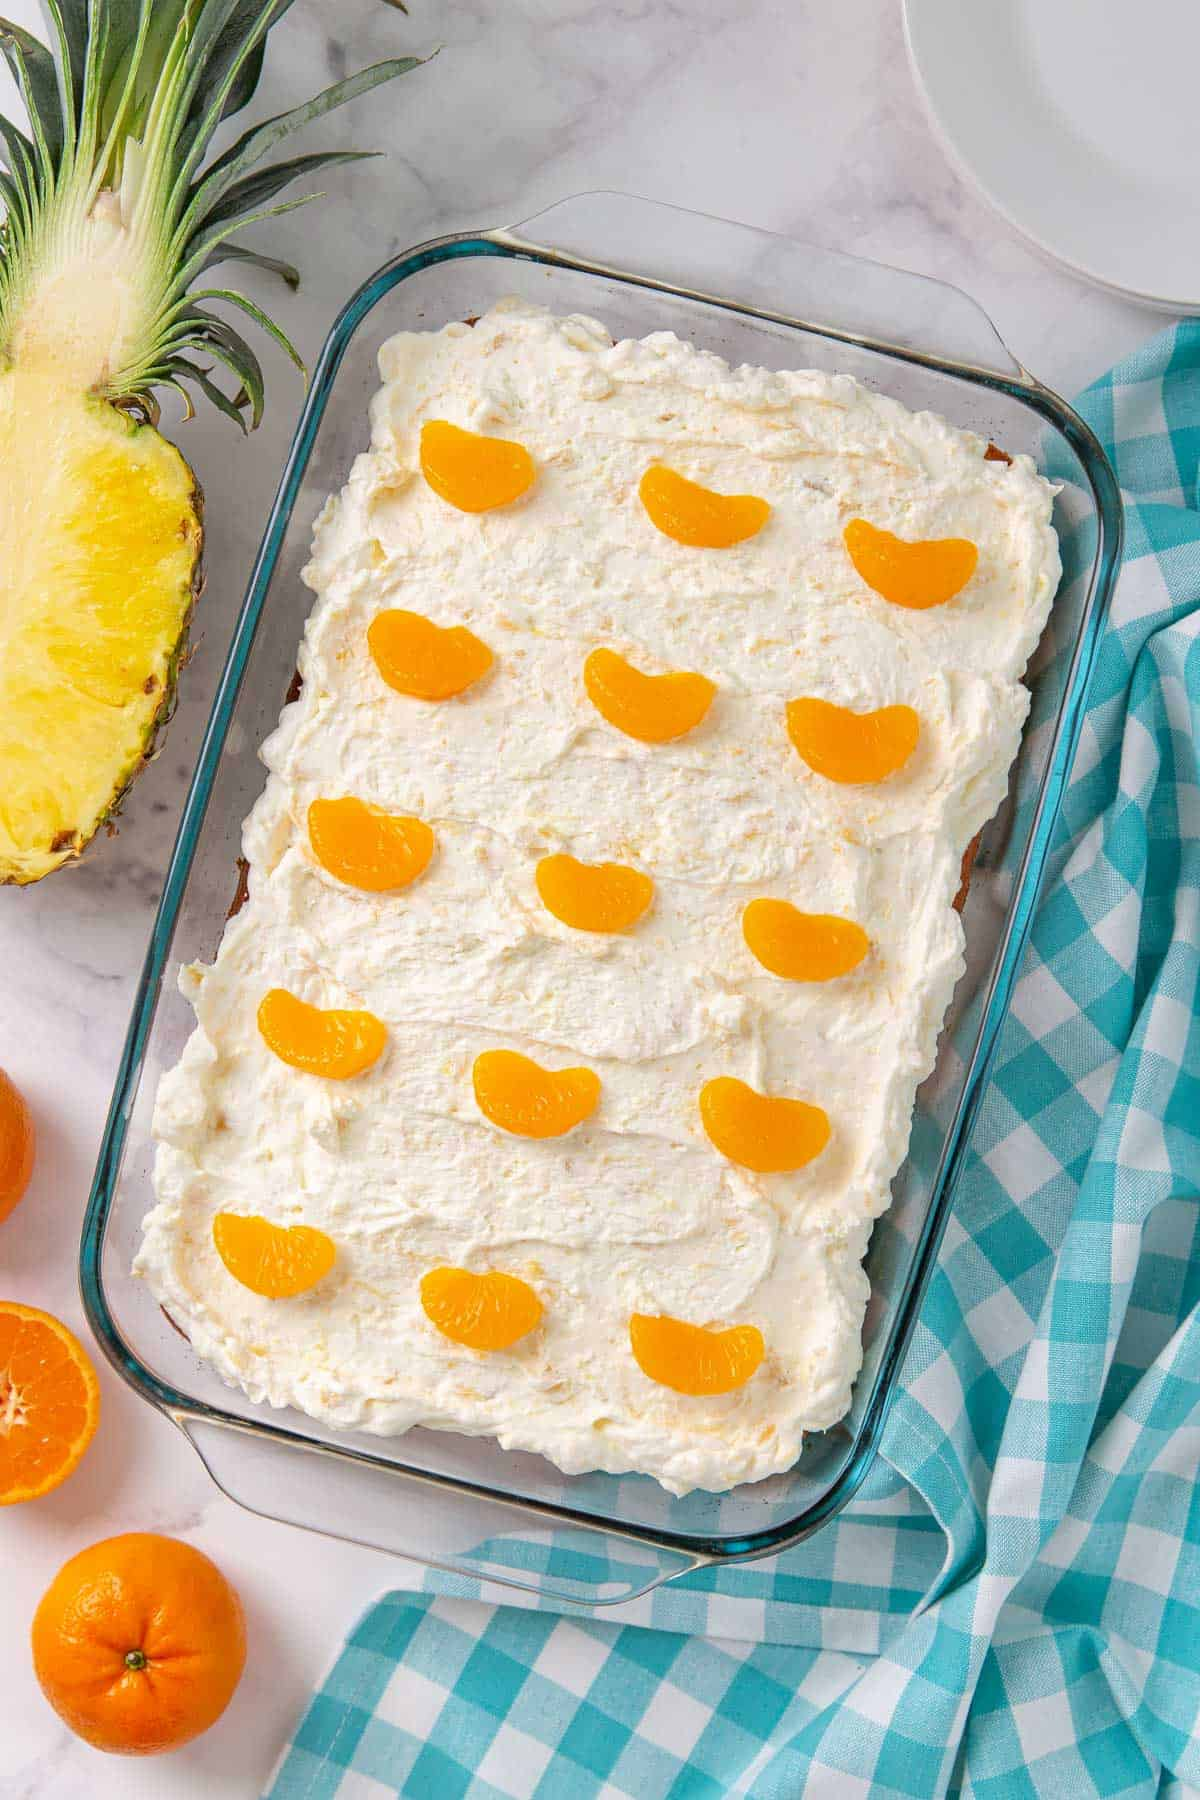 Overhead view of a pig pickin' cake by a  checked napkin, sliced pineapple and mandarin oranges.